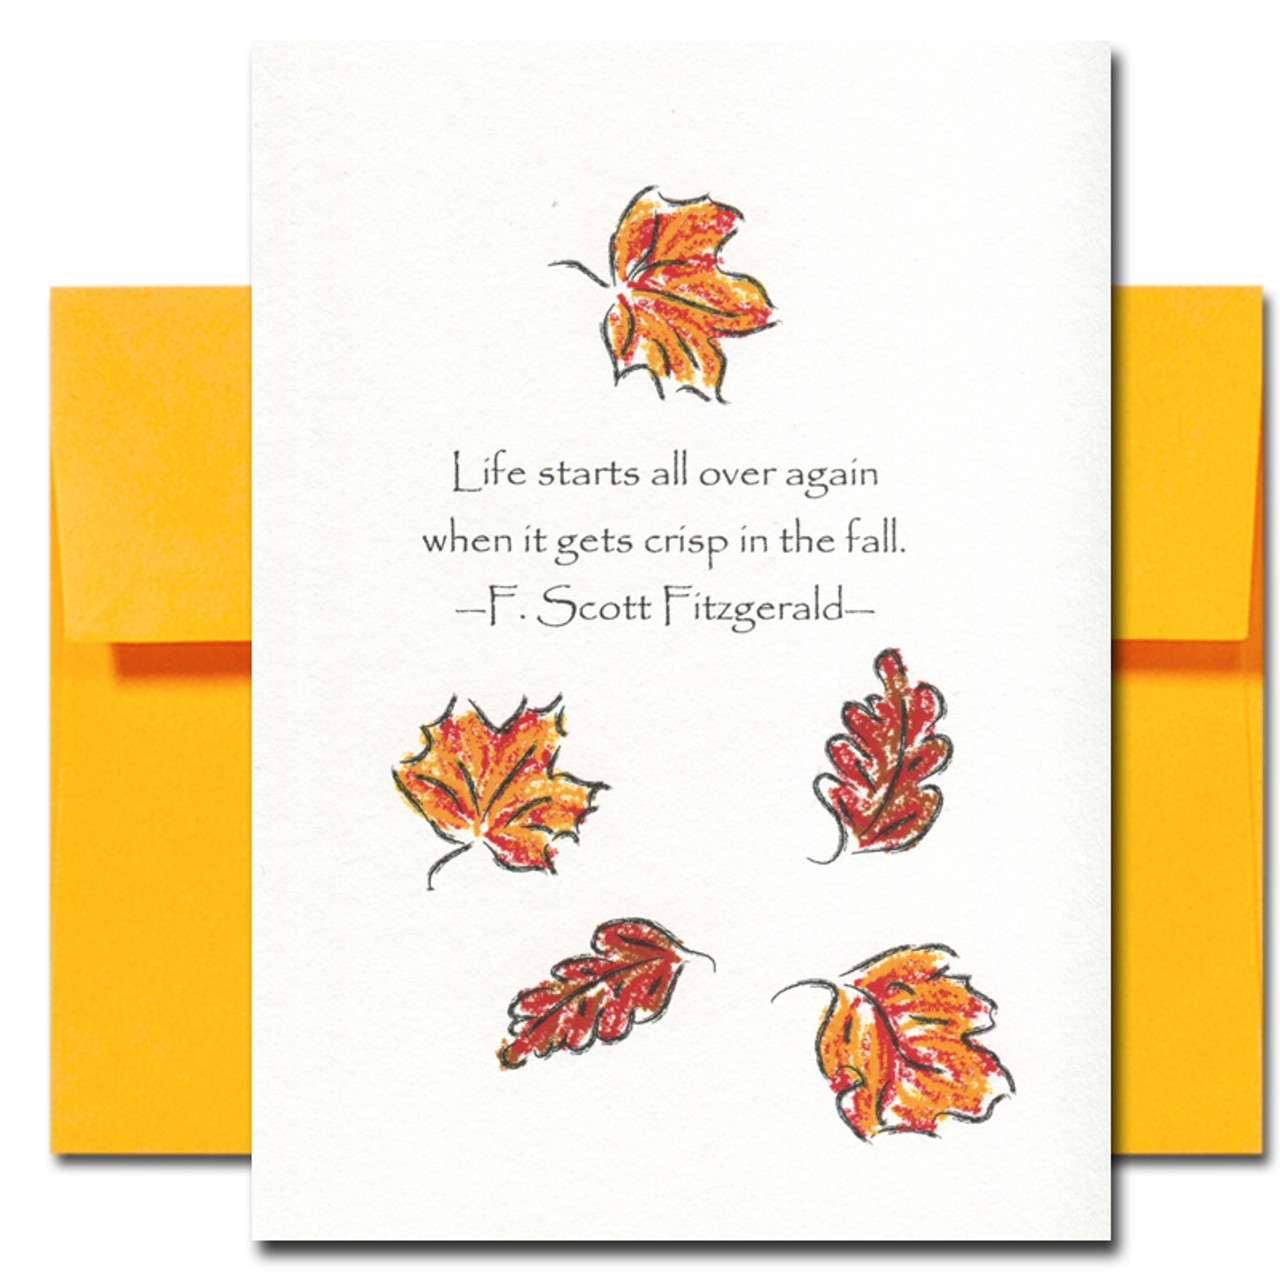 Fall Card cover reads: Life starts all over again when it gets crisp in the fall. -F. Scott Fitzgerald